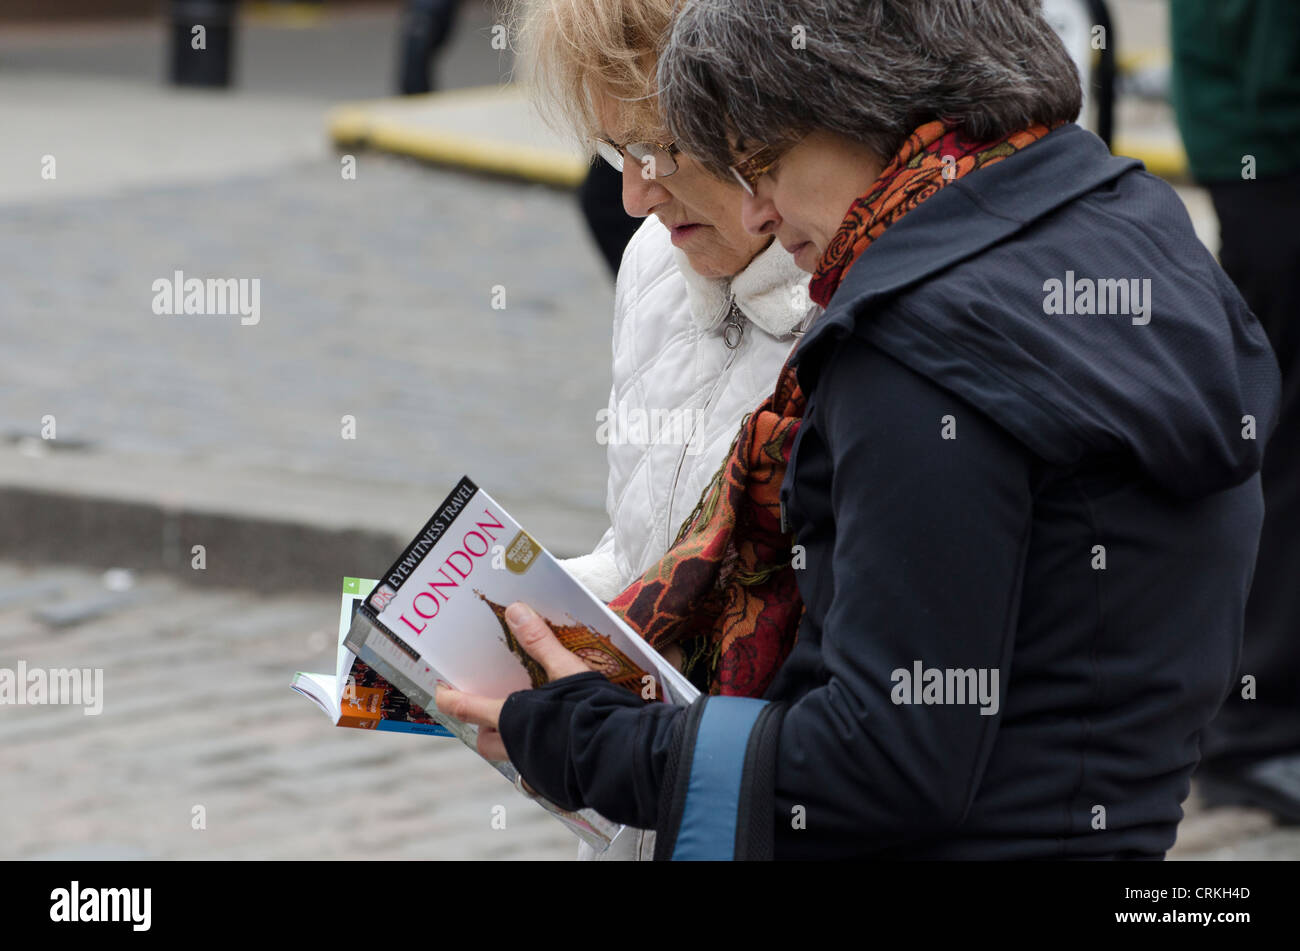 Two middle aged women tourists search London guide books in street Covent garden London Uk - Stock Image